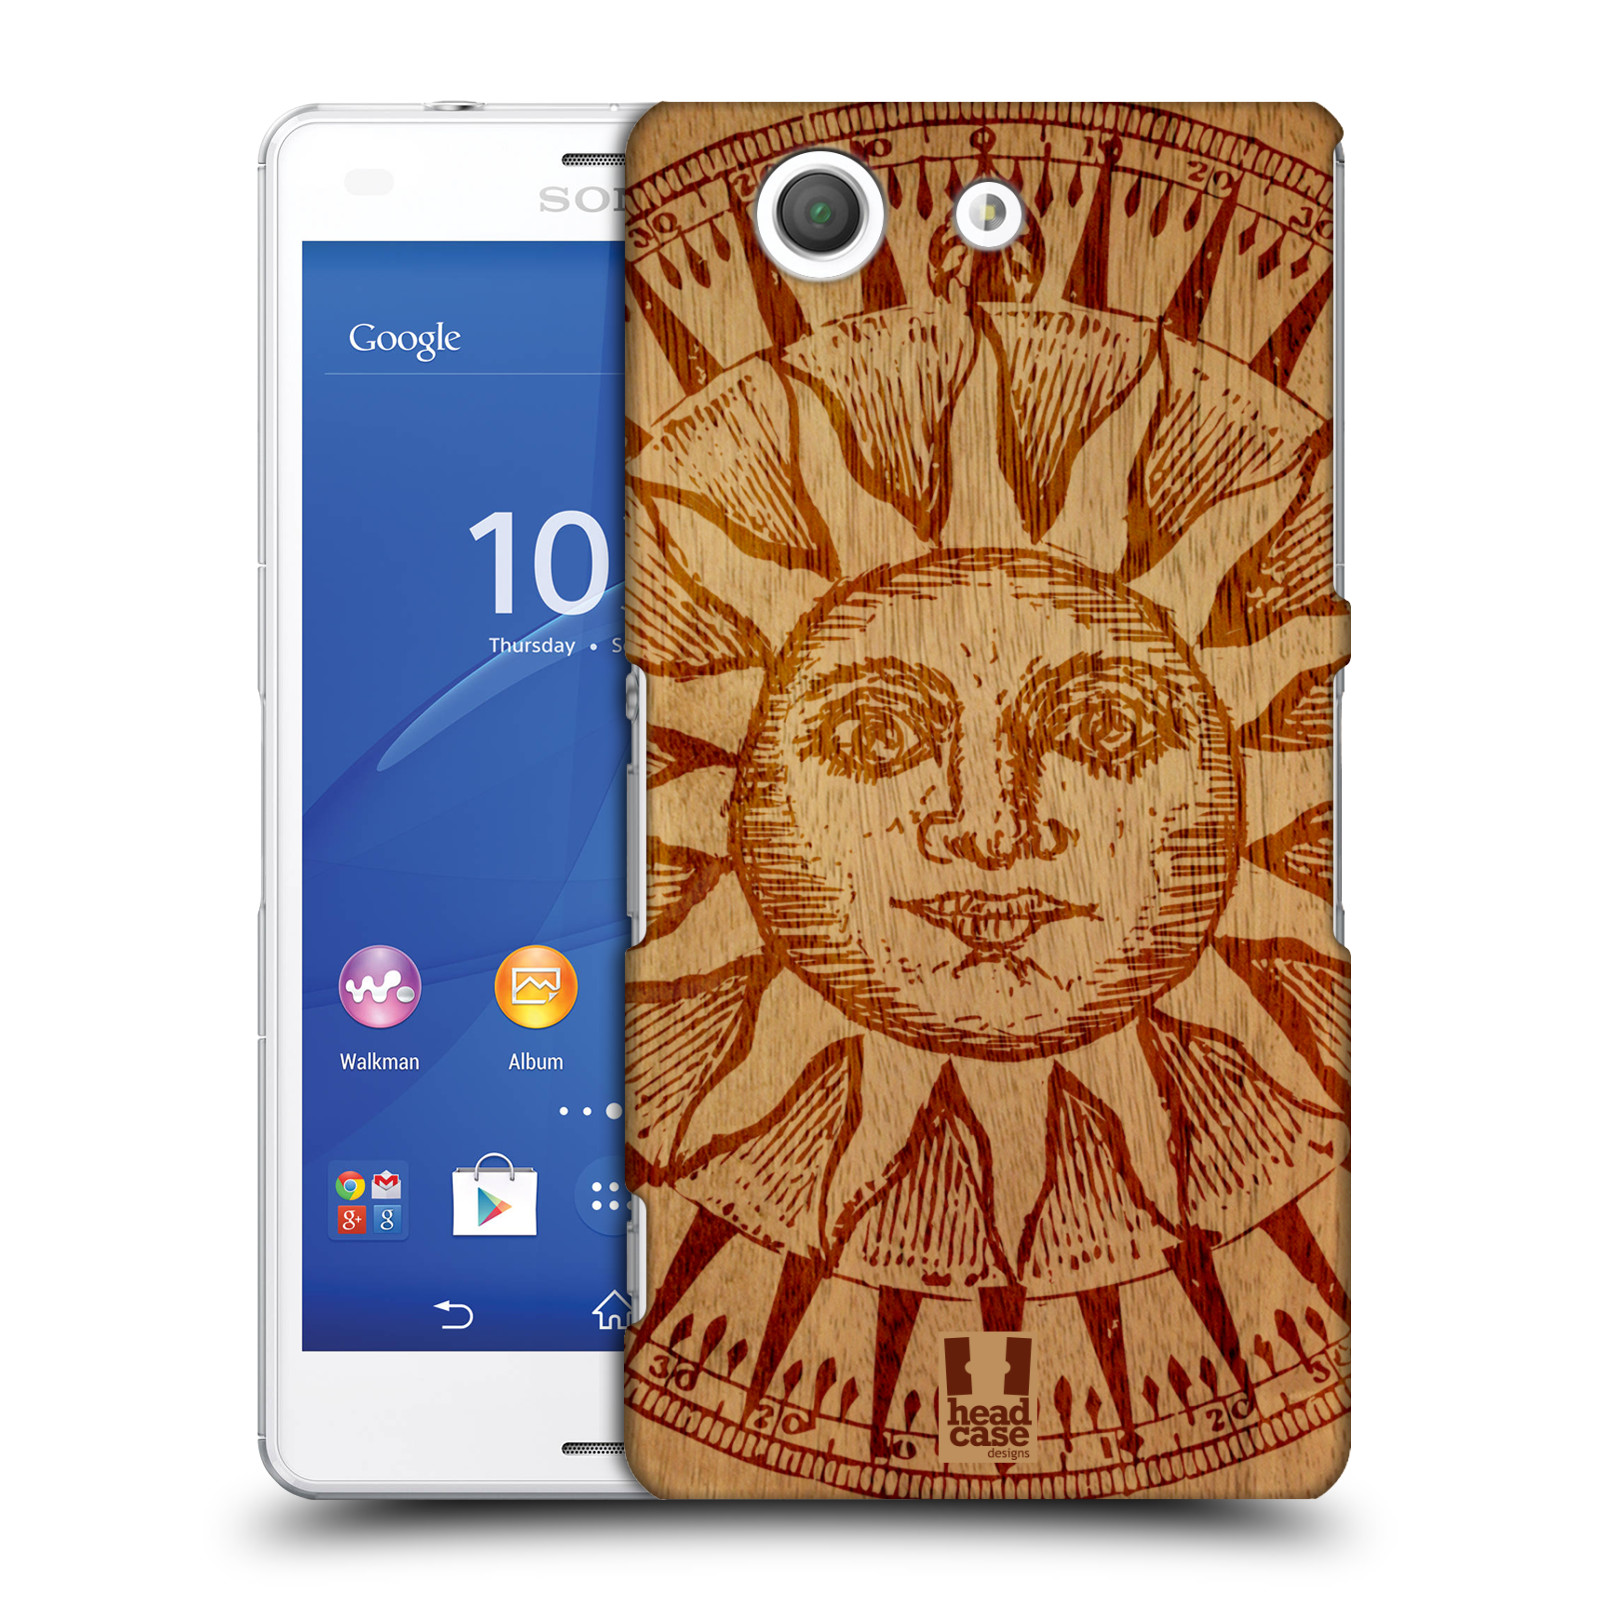 HEAD CASE DESIGNS WOOD ART CASE COVER FOR SONY XPERIA Z3 COMPACT D5833